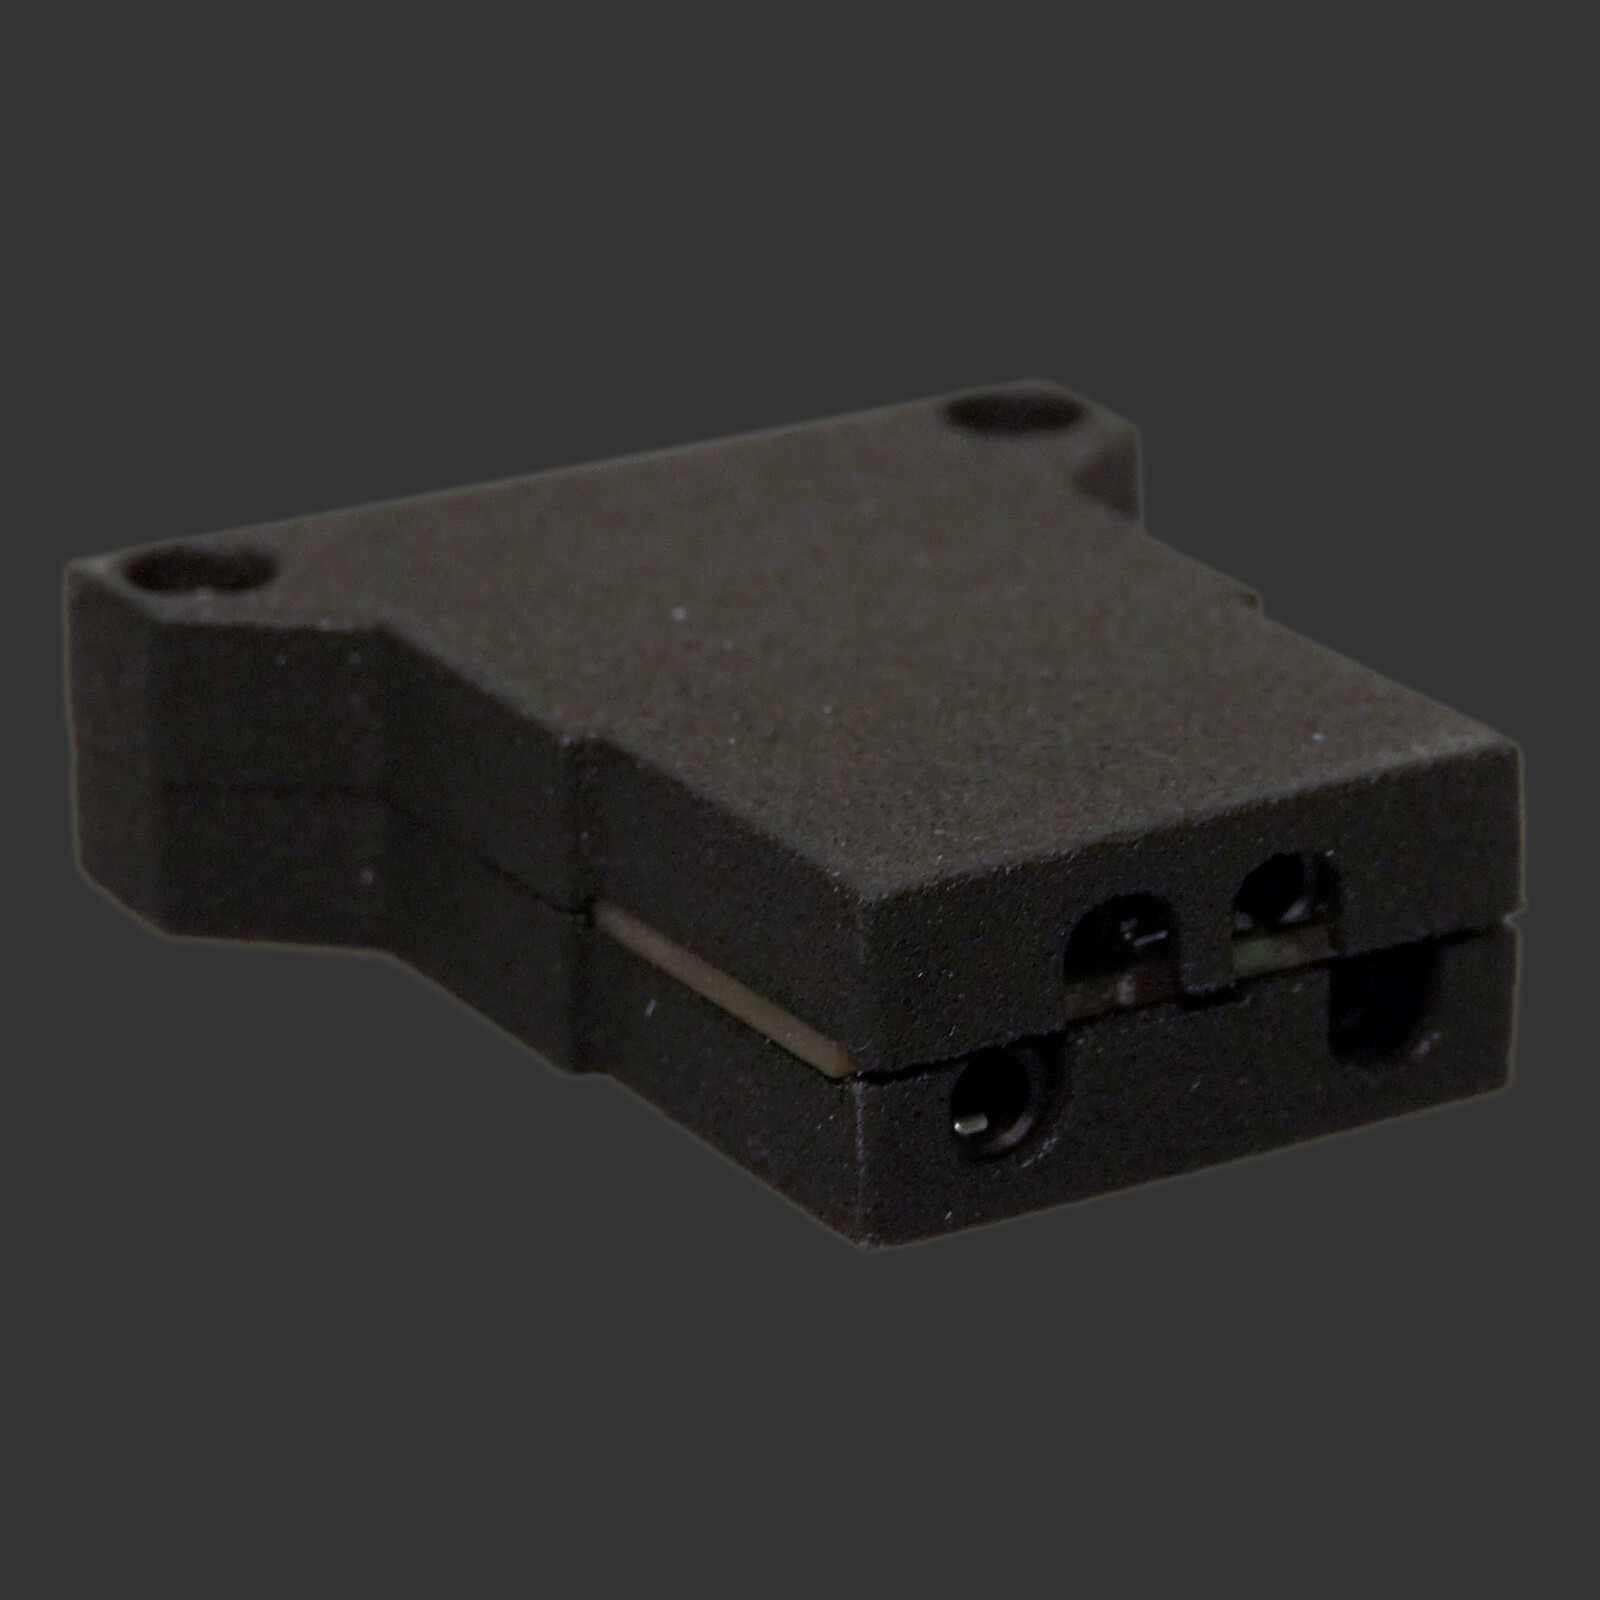 Colecovision USB Power Plug (will be released early 2018)